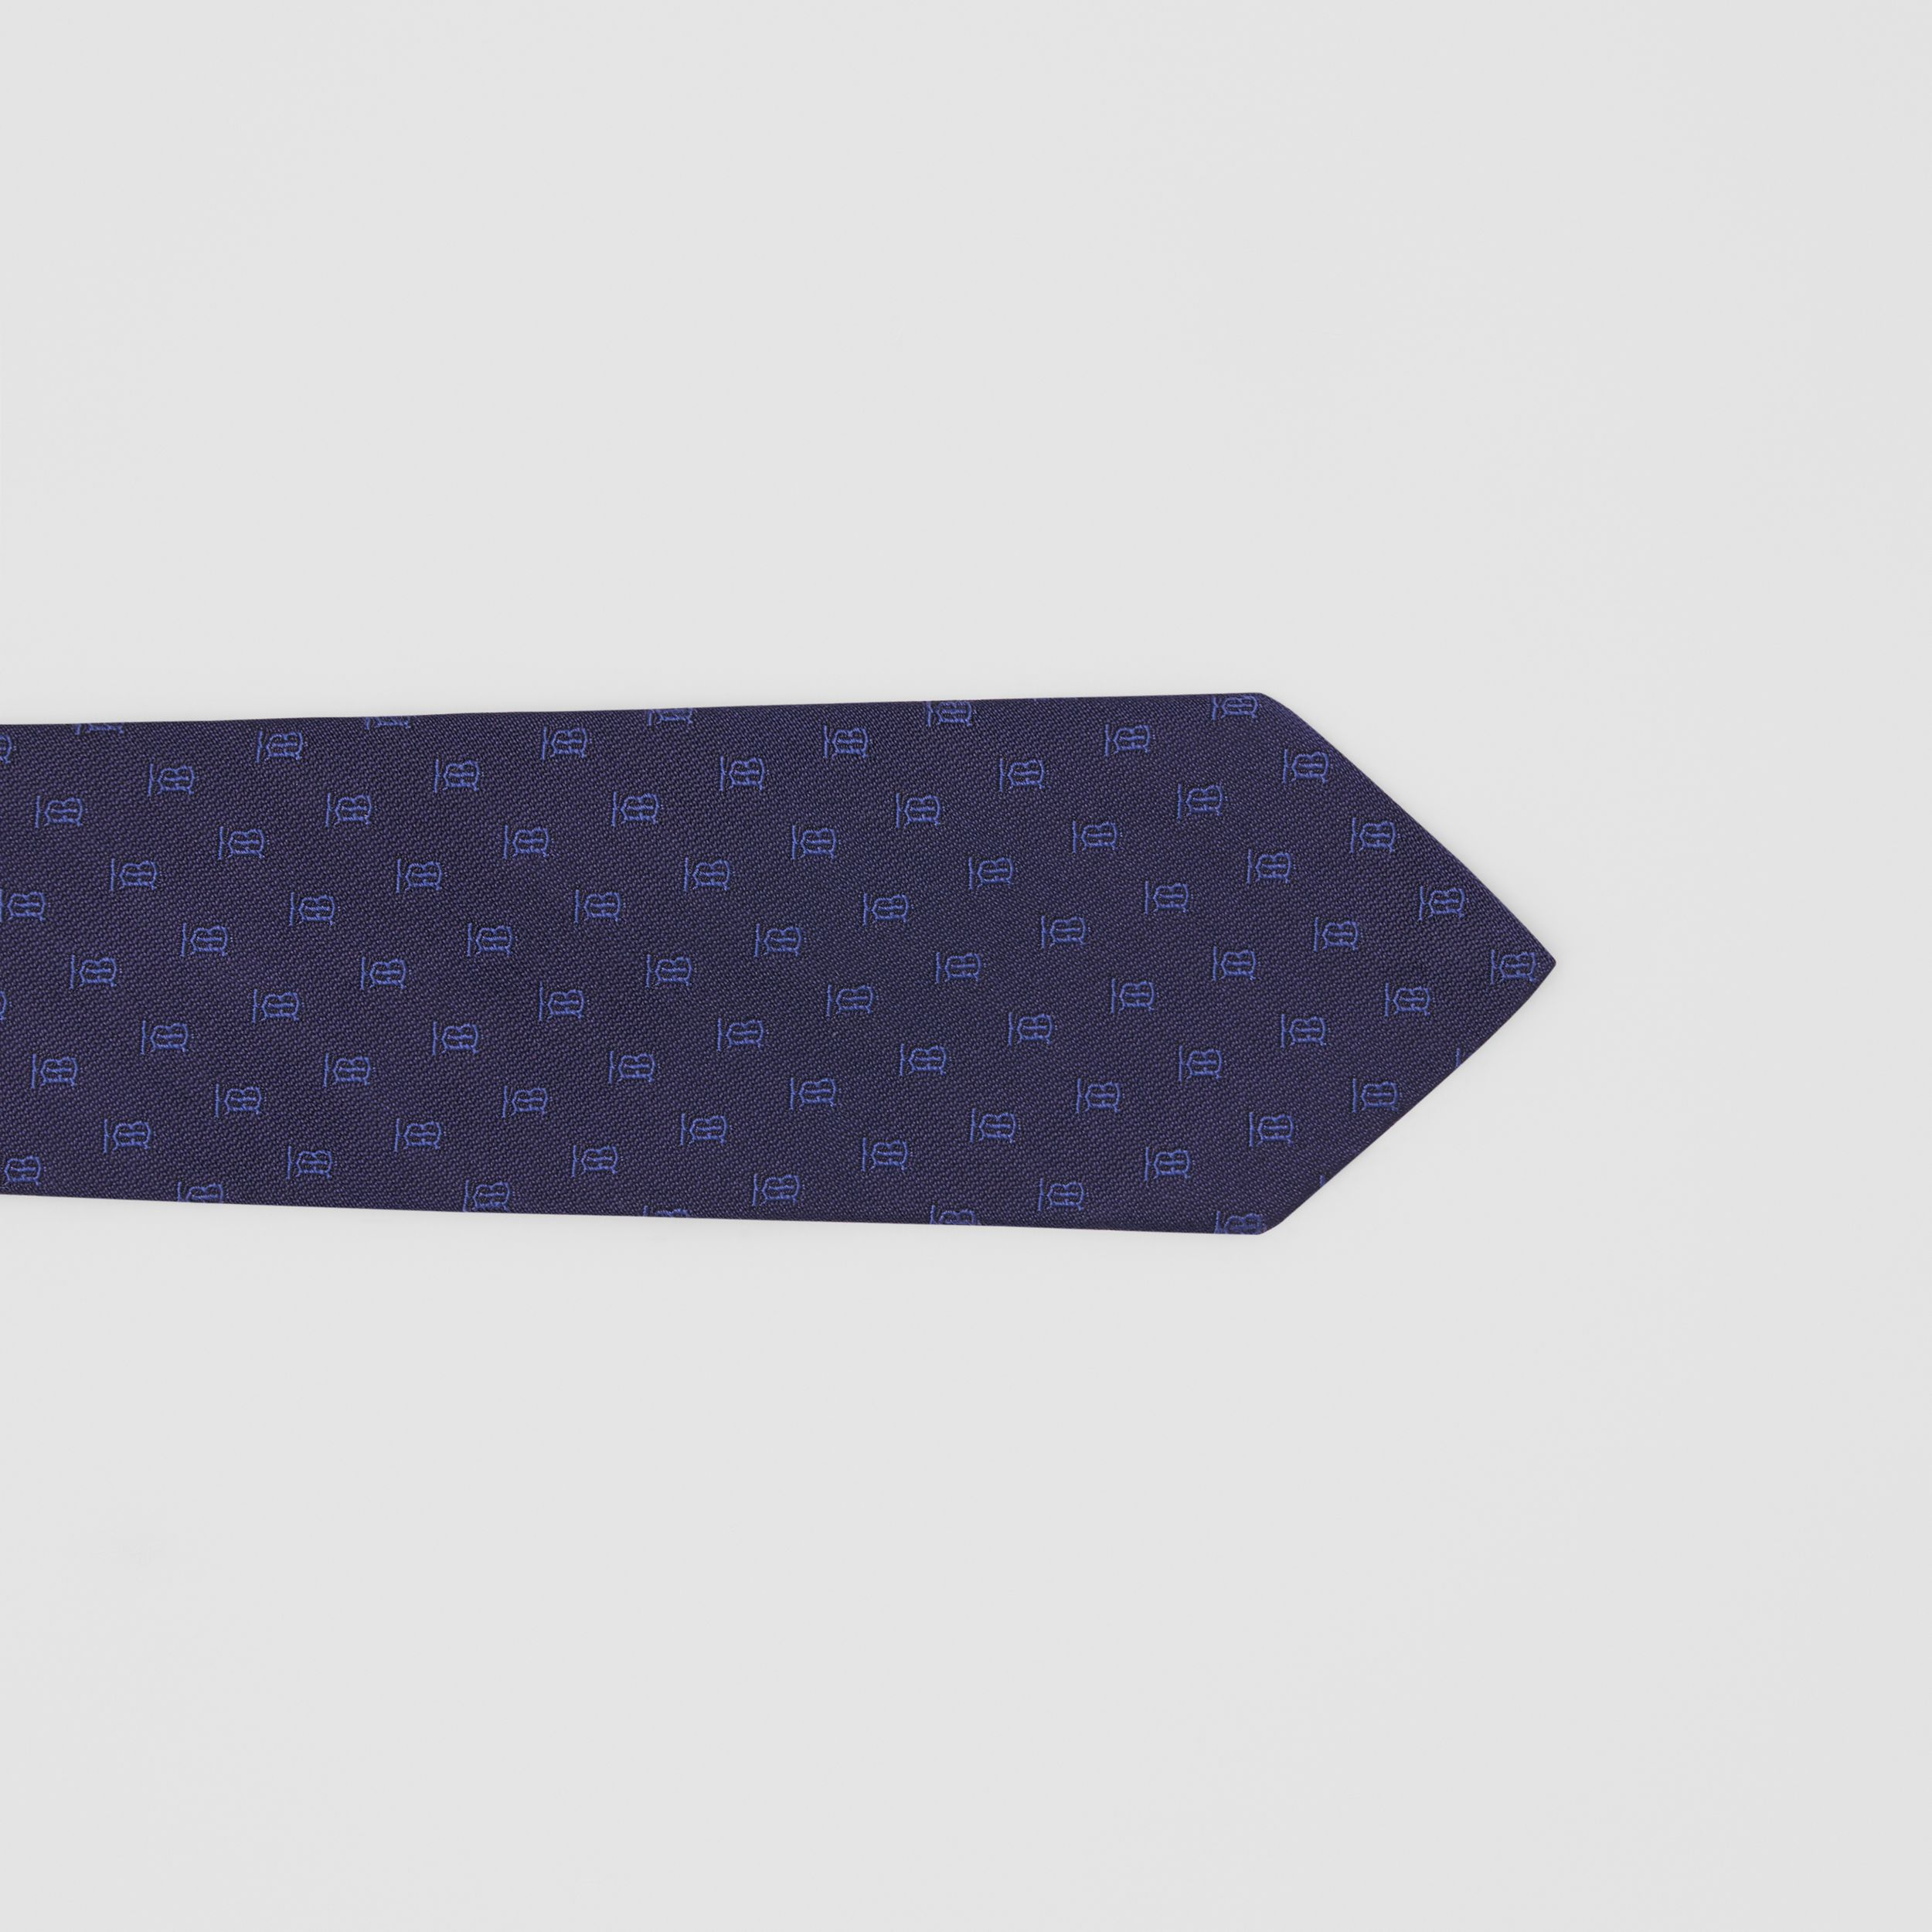 Classic Cut Monogram Motif Silk Jacquard Tie in Navy - Men | Burberry - 2